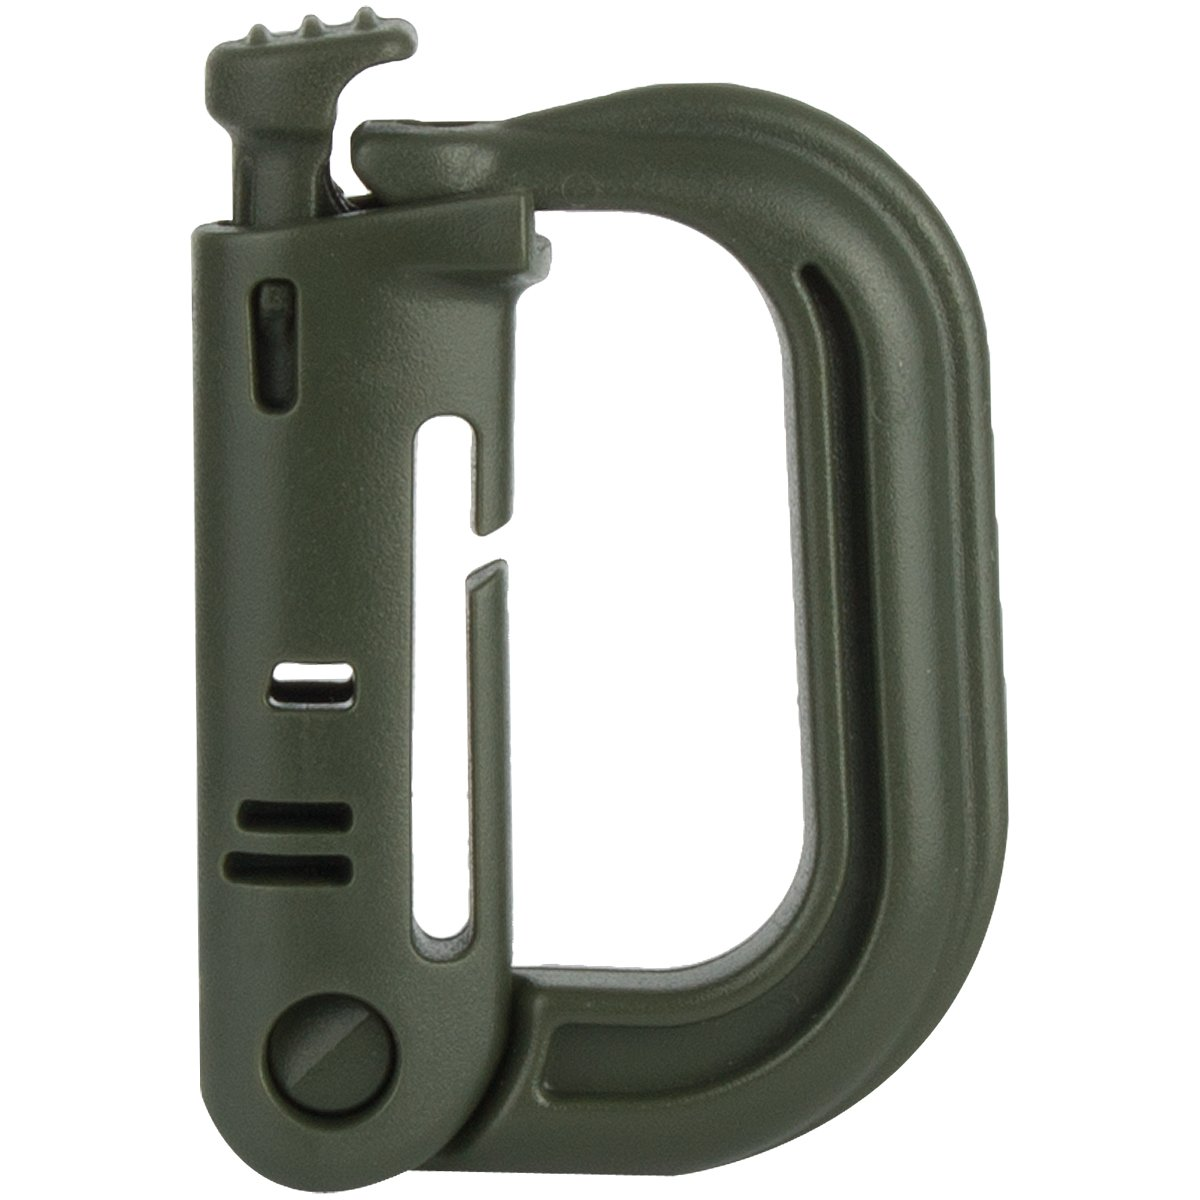 Coyote Tan MA072 ITW Grimloc D-Ring Carabiner For Attachment To 25mm Webbing by Highlander MA072 TAn